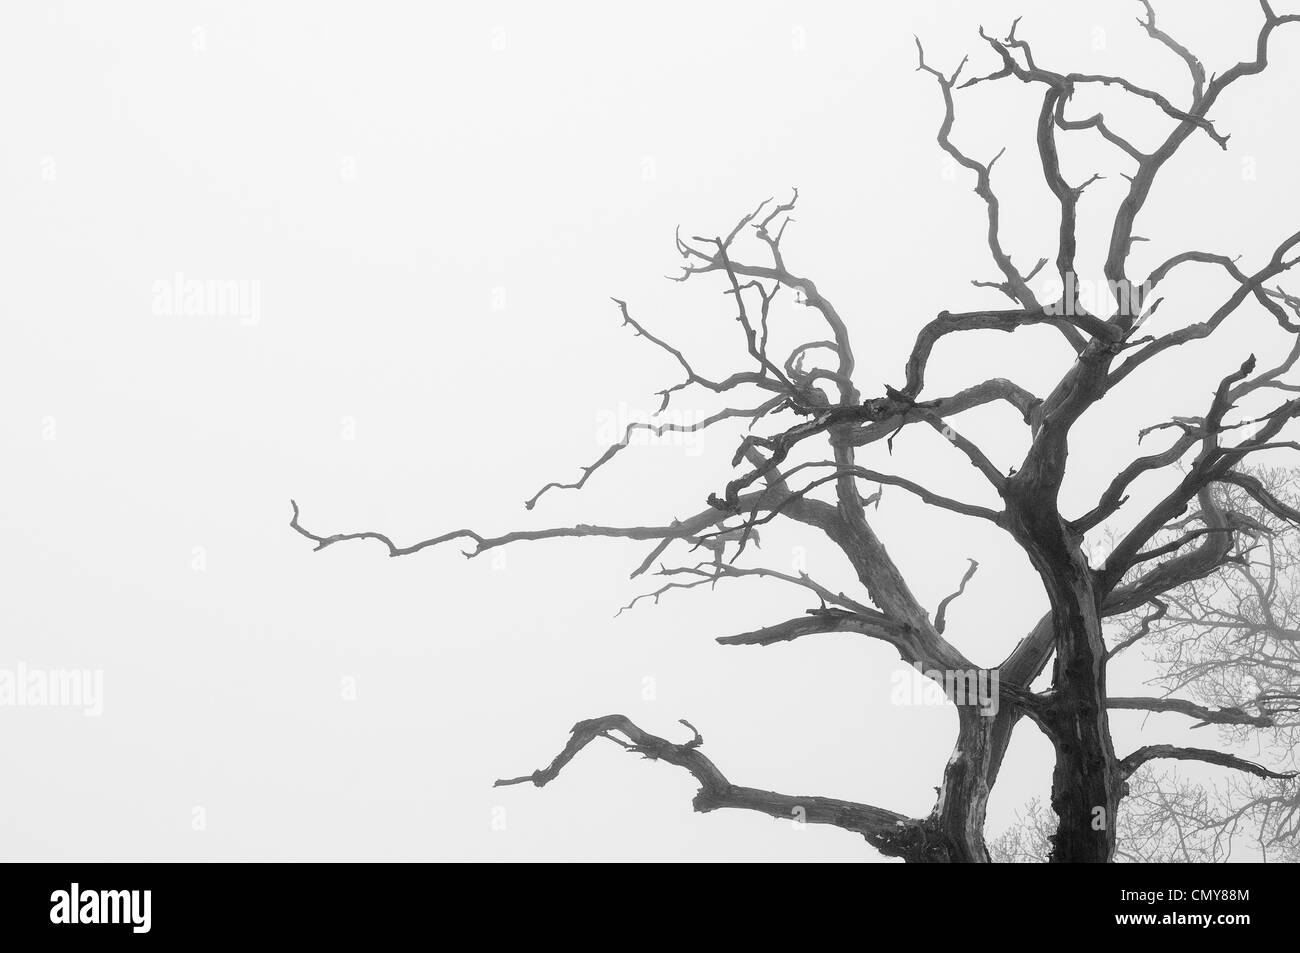 Bare tree branches in silhouette on a misty winter day, black and white - Stock Image